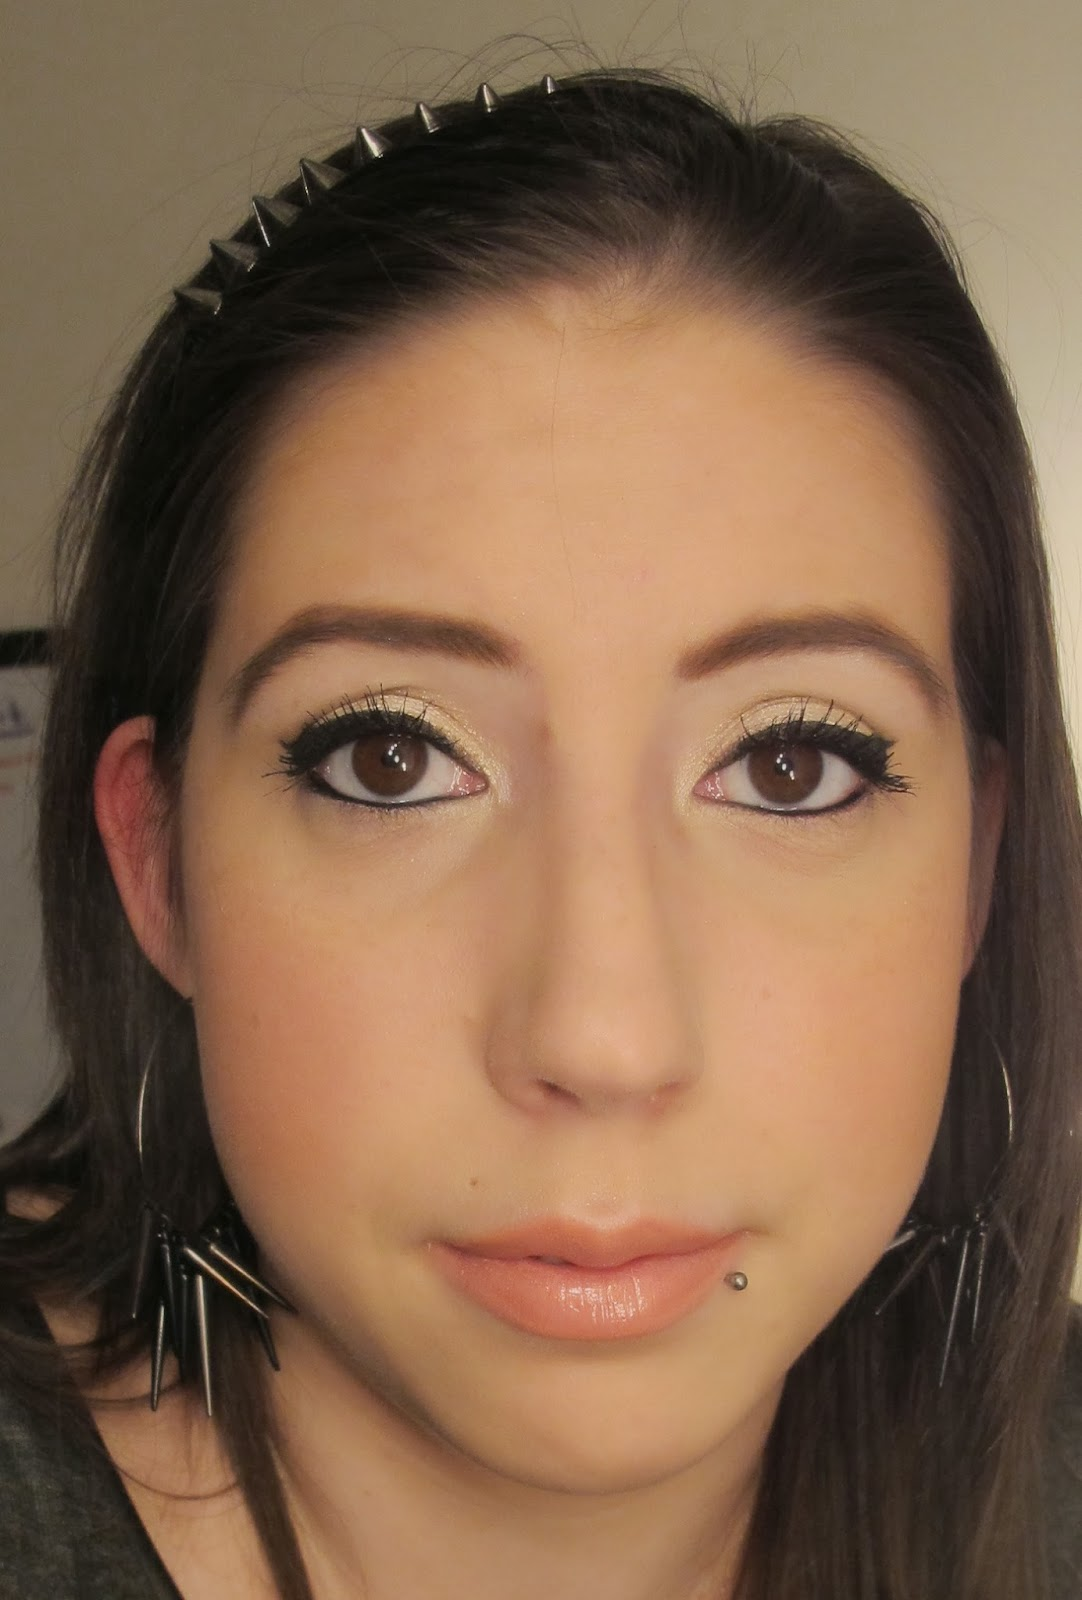 Mac Look In A Box 2016 Summer Collection: Steph Stud Makeup: Natural Look Using MAC And NARS